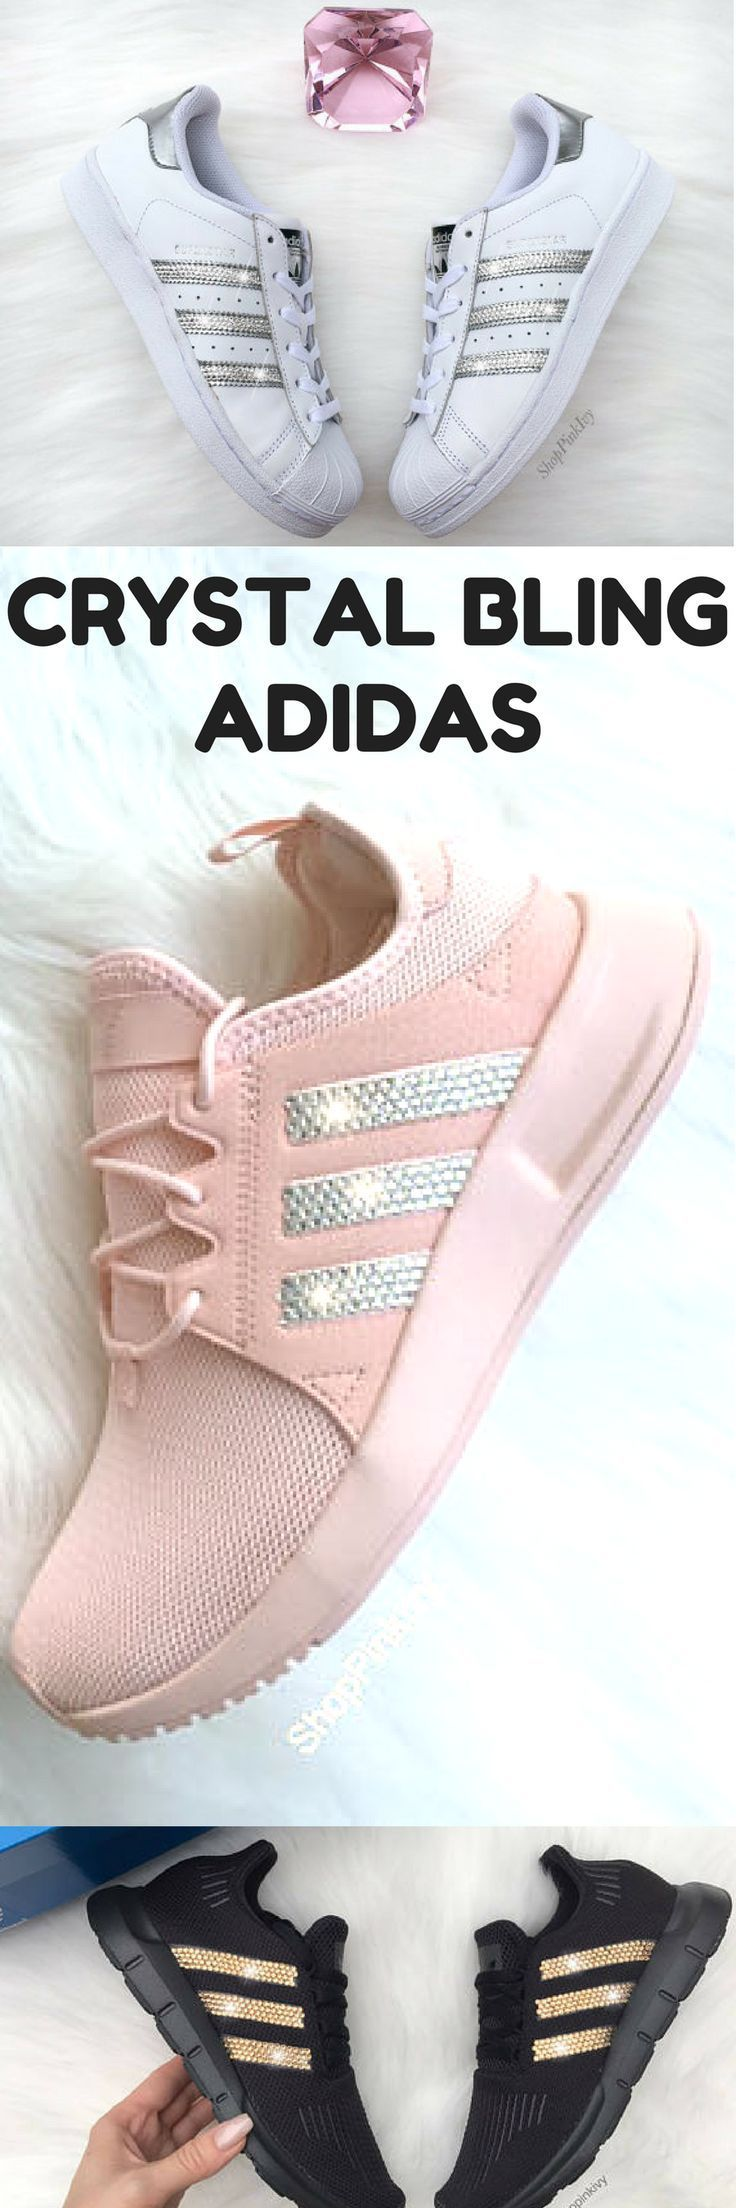 wholesale dealer 9e54a 59404 Custom blinged Adidas with swarovski crystals  bling  shoes  adidas   sneakers  pumpedupkicks  promoted  etsy